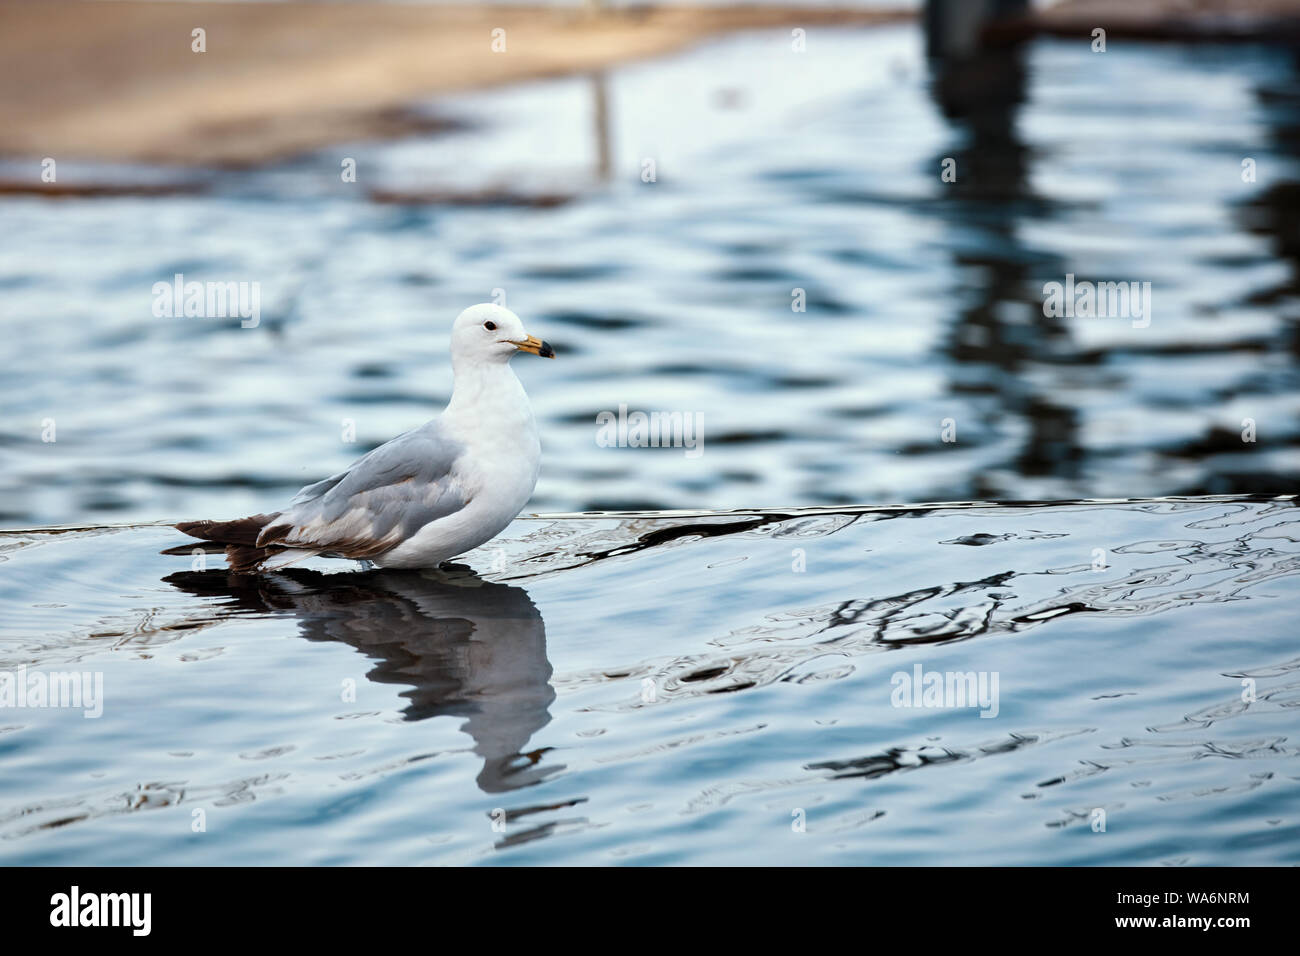 One seagull standing in the water of a pond. Close up view. Stock Photo